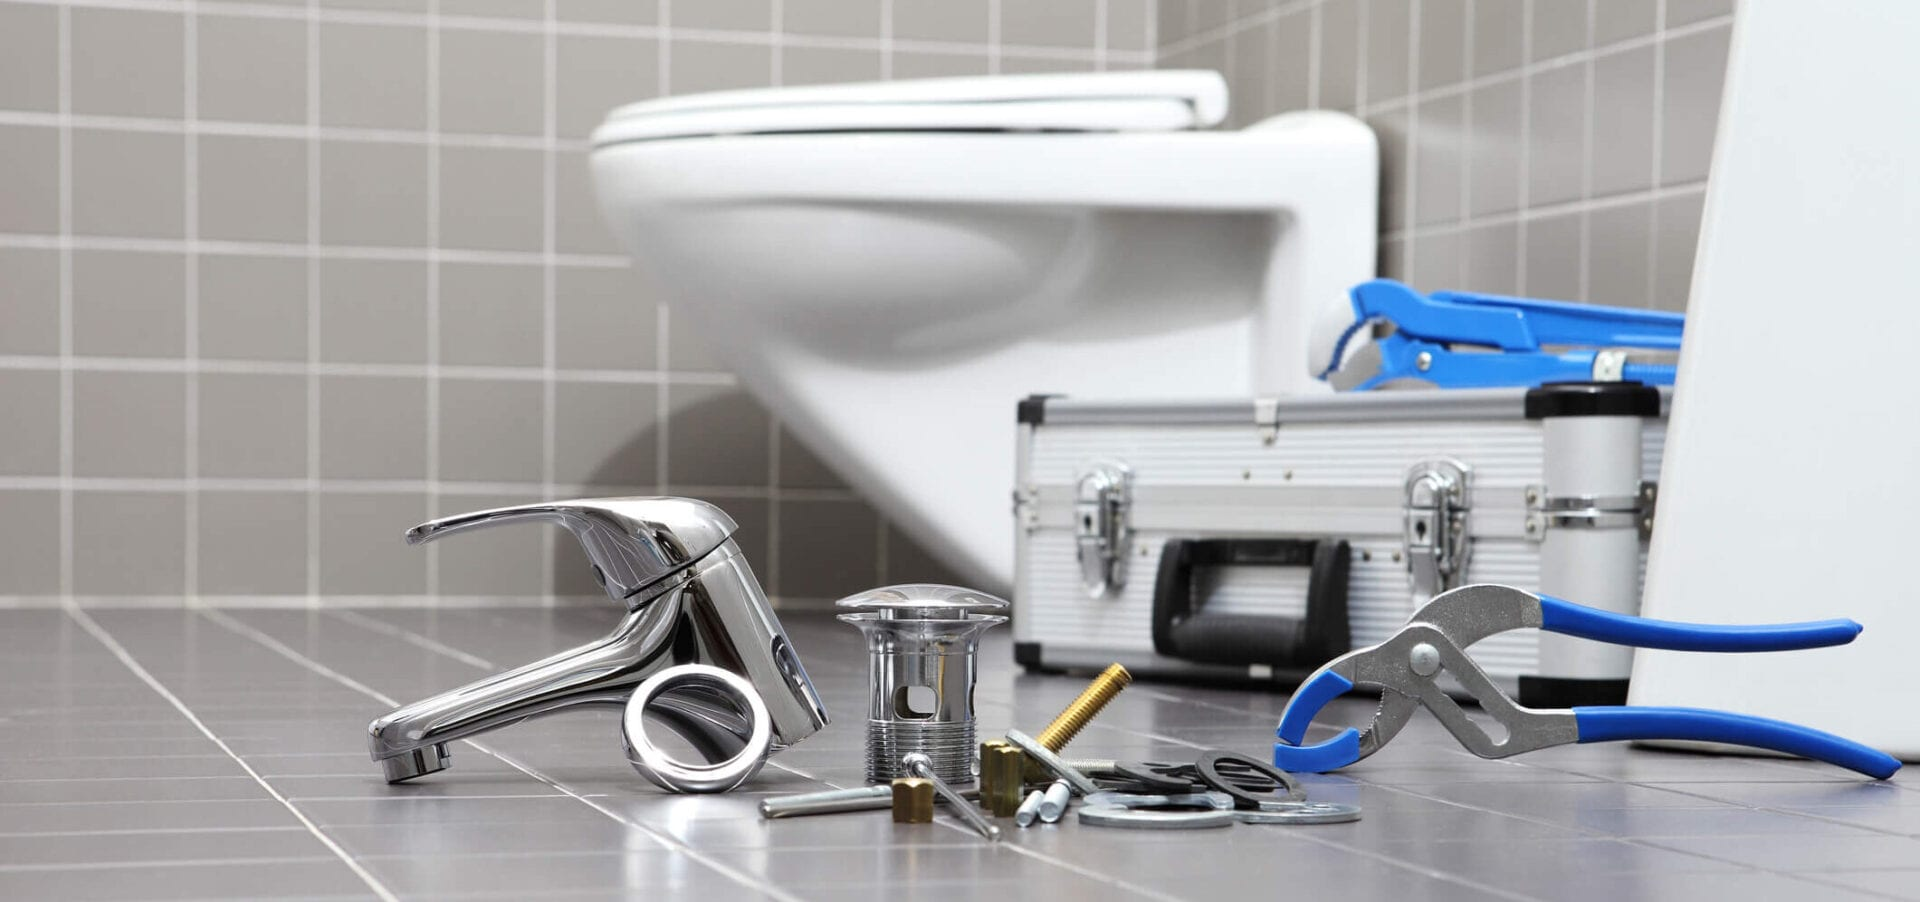 plumber tools and equipment in a bathroom, plumbing repair service, assemble and install concept.